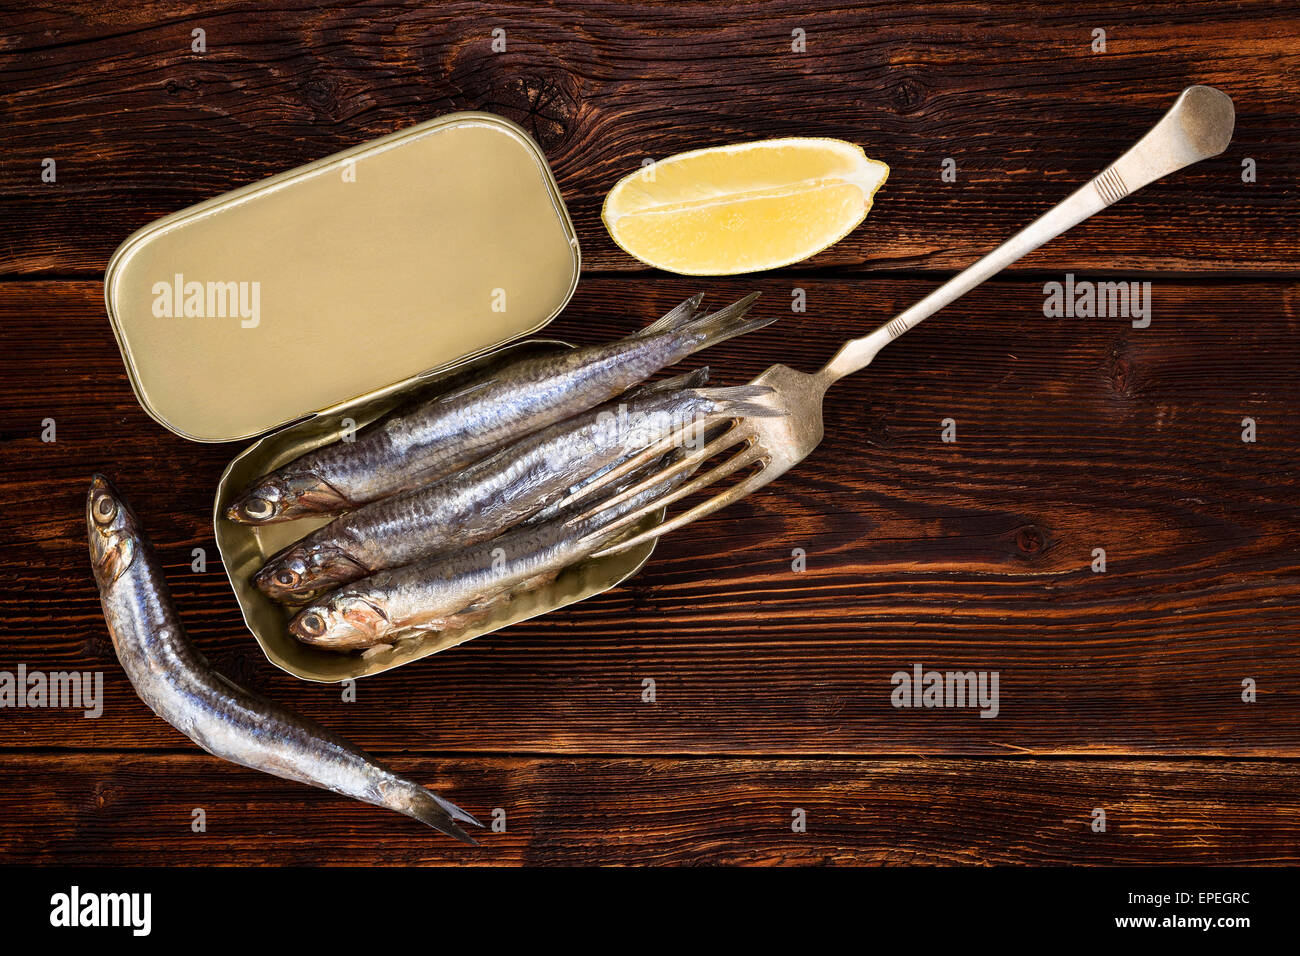 Sardines on old wooden textured background with lemon piece. Culinary healthy fish eating. - Stock Image